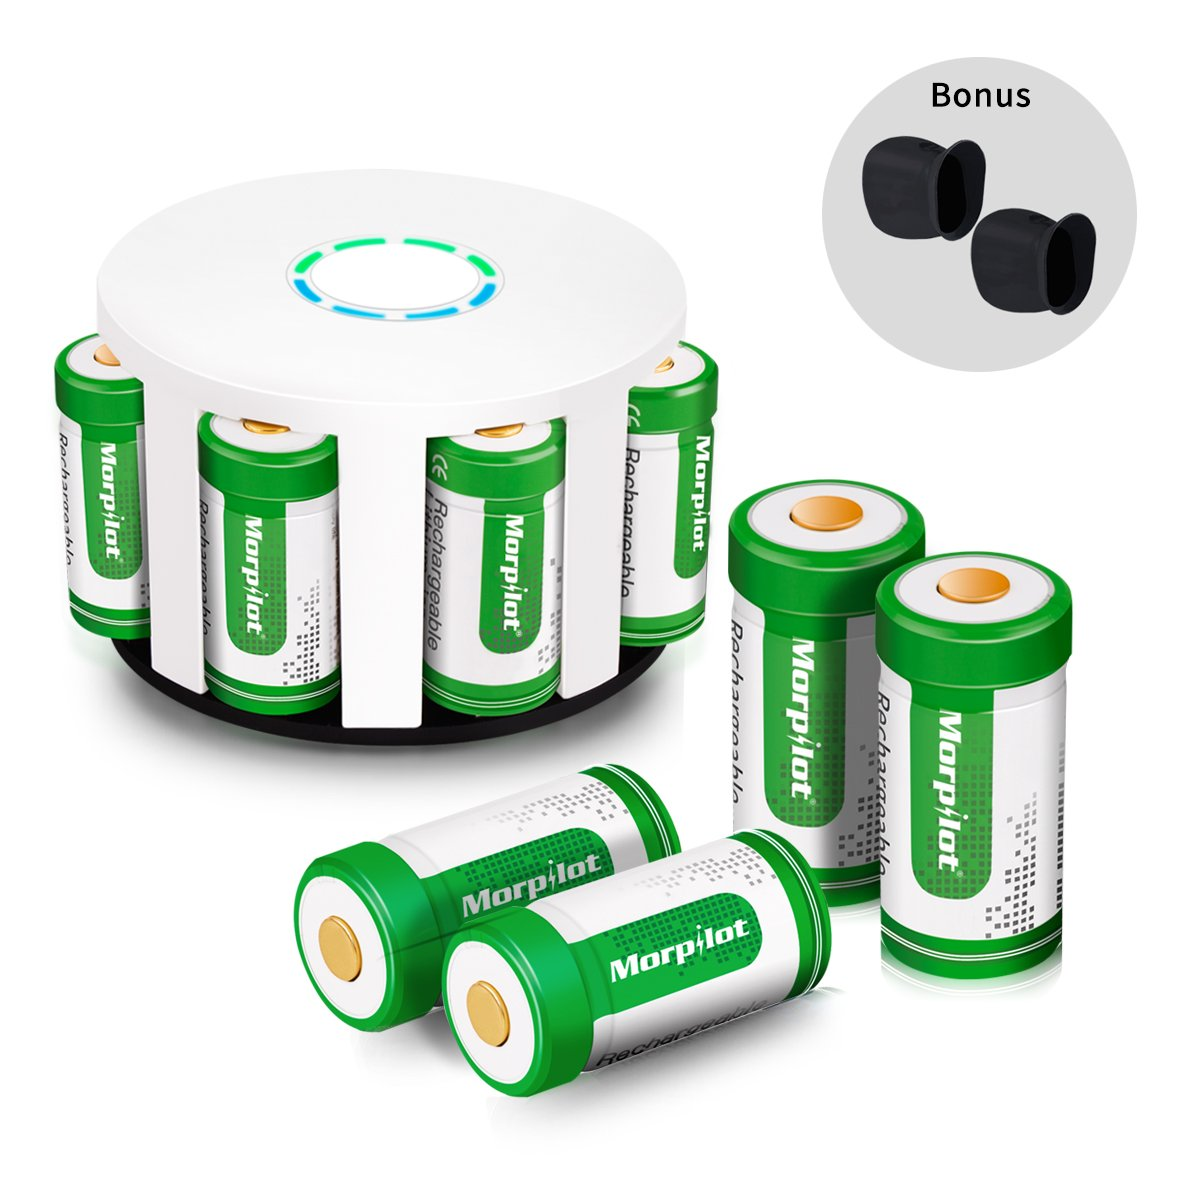 Morpilot RCR123A Rechargeable Batteries and Charger 8Pcs 3.7V 700mAh Li-ion Battery with 8-Ports Charger for Arlo VMC3030/3230/3330/3430/3530 Security Cameras by Morpilot